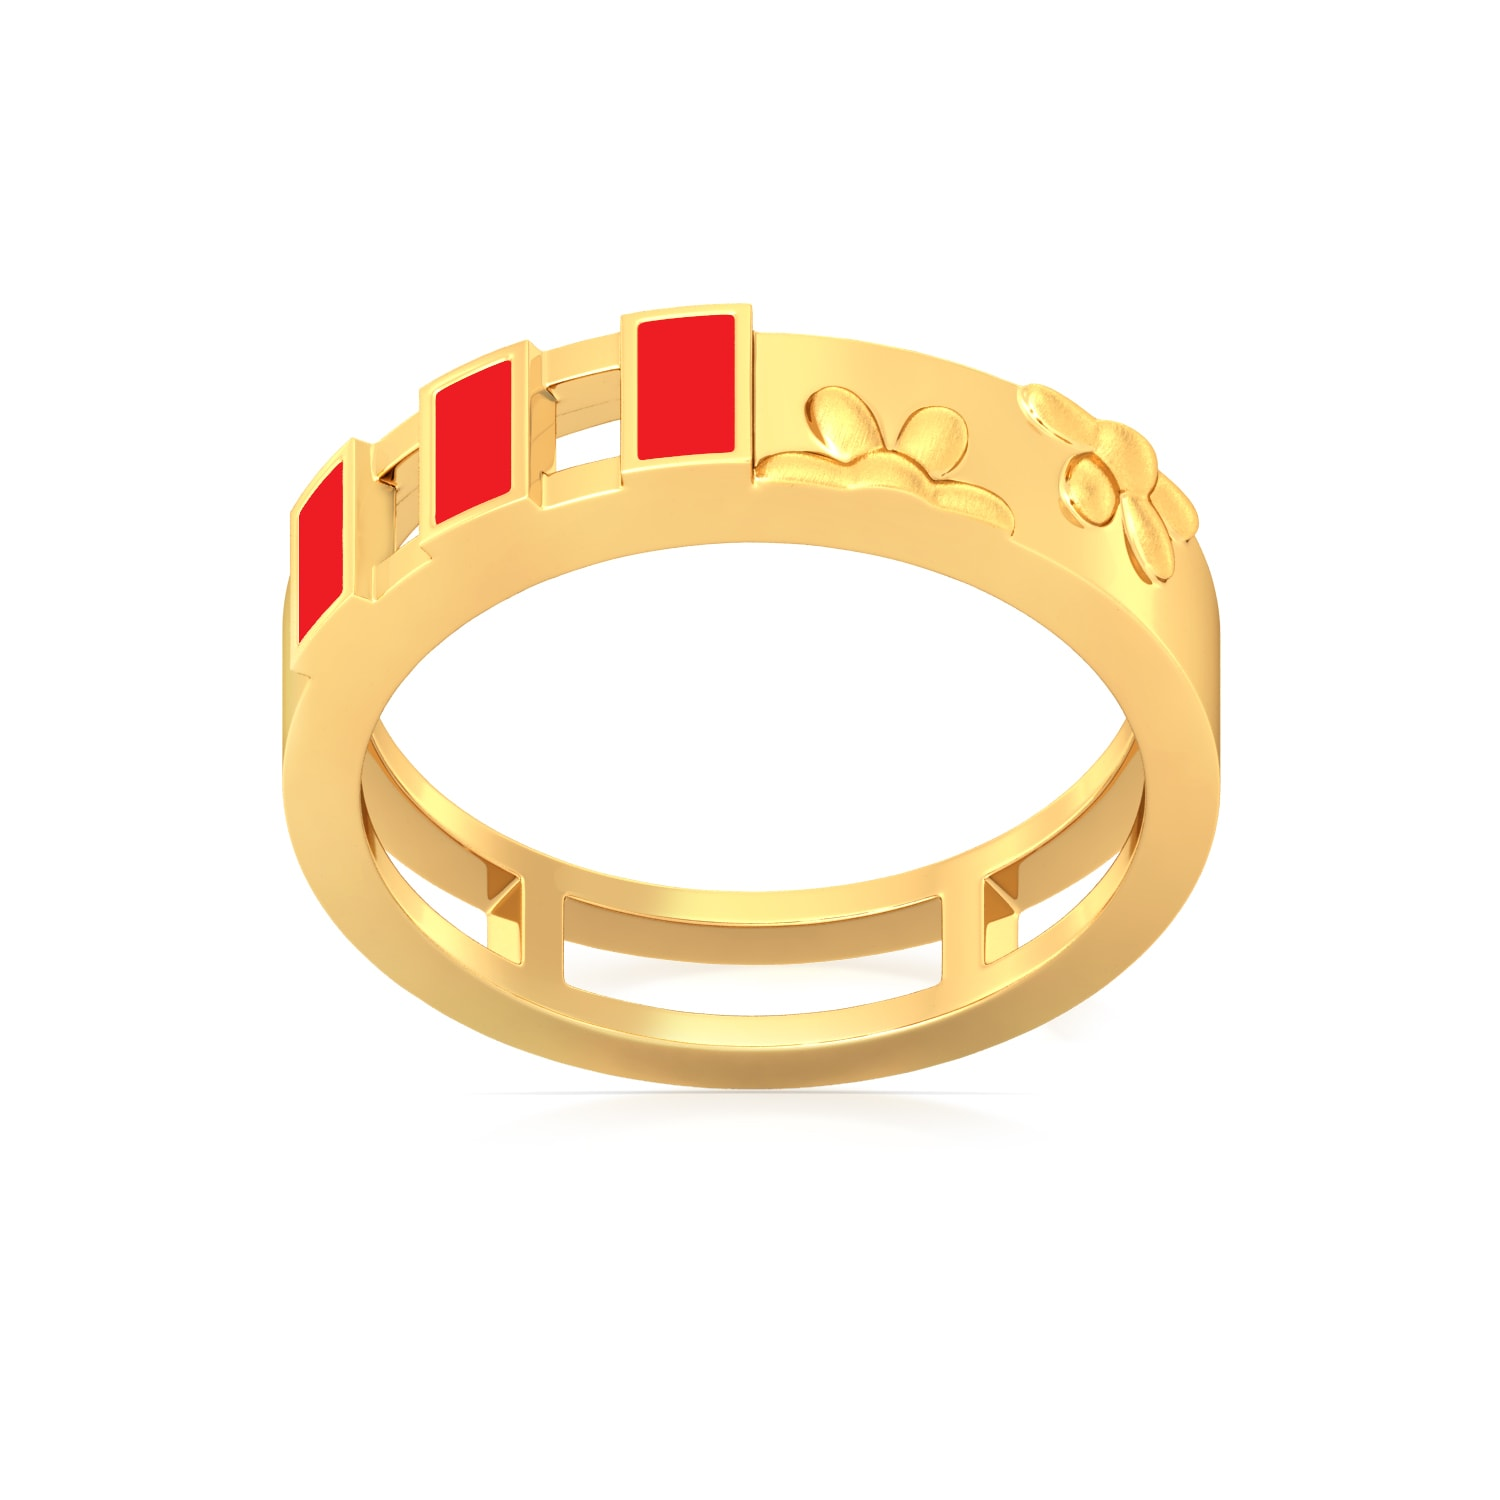 Opposites attract  Gold Rings